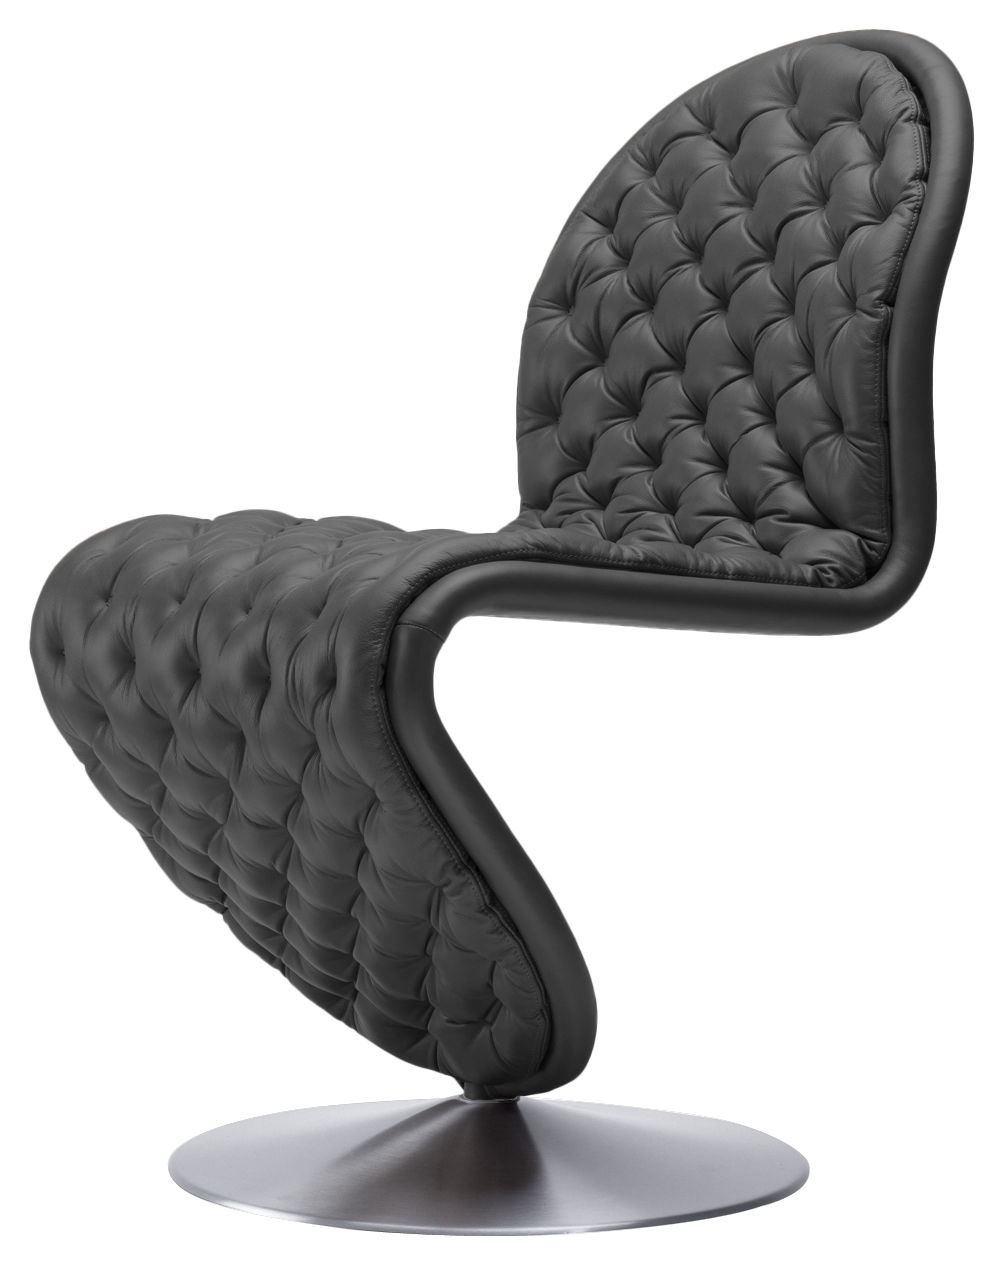 Chaise Rembourre 123 Deluxe Cuir Capitonn